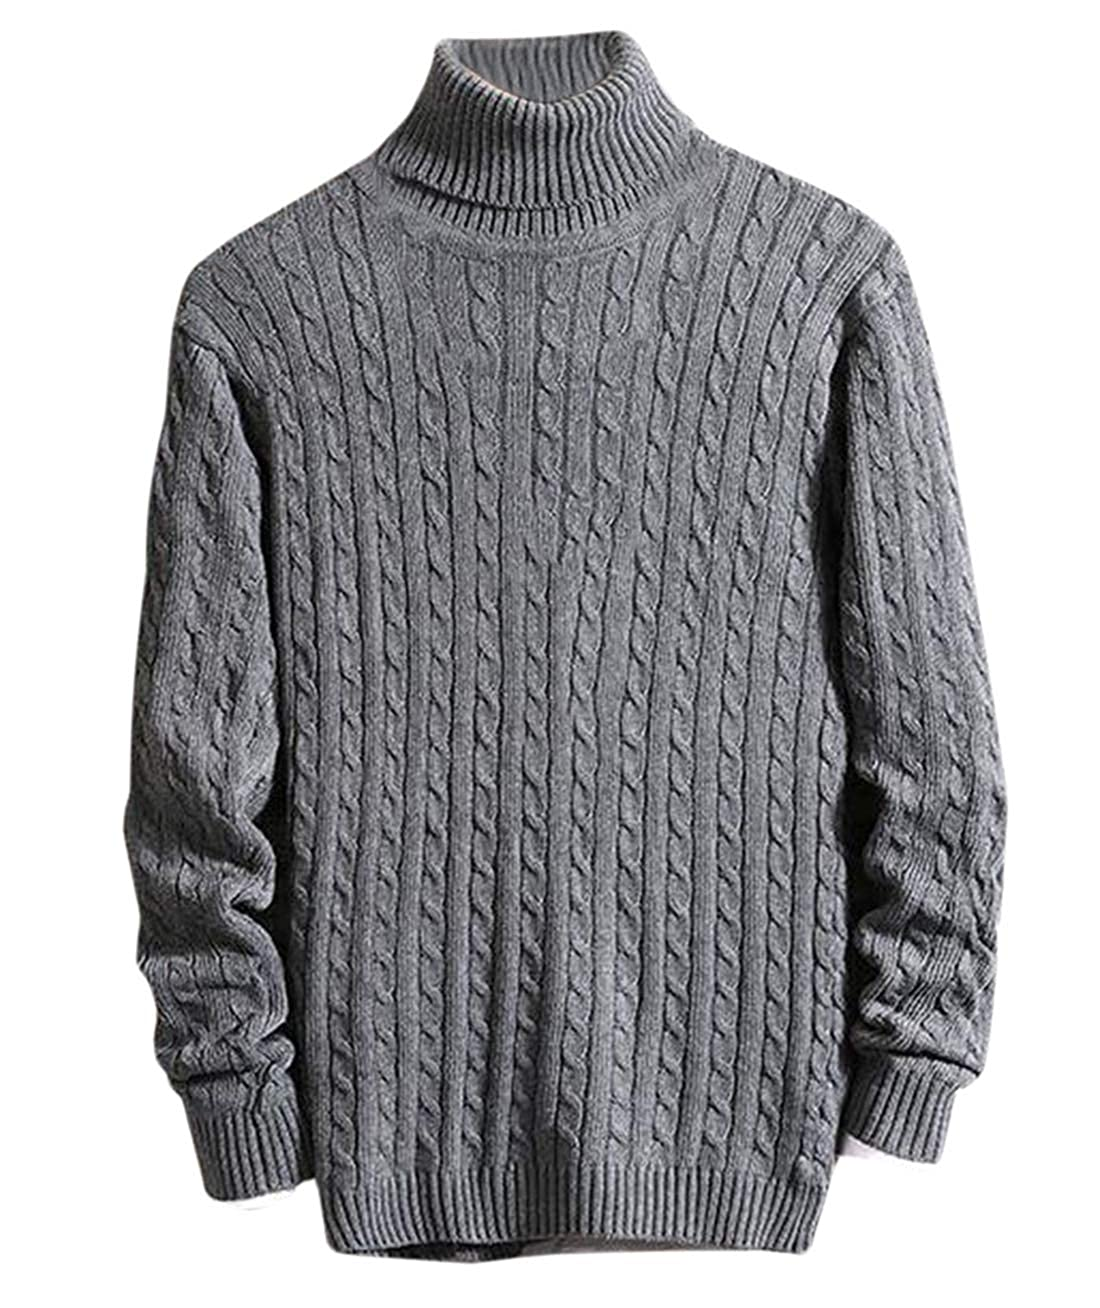 Gnao Mens Warm Long Sleeve Casual Cable Twist Turtleneck Pullover Winter Sweater